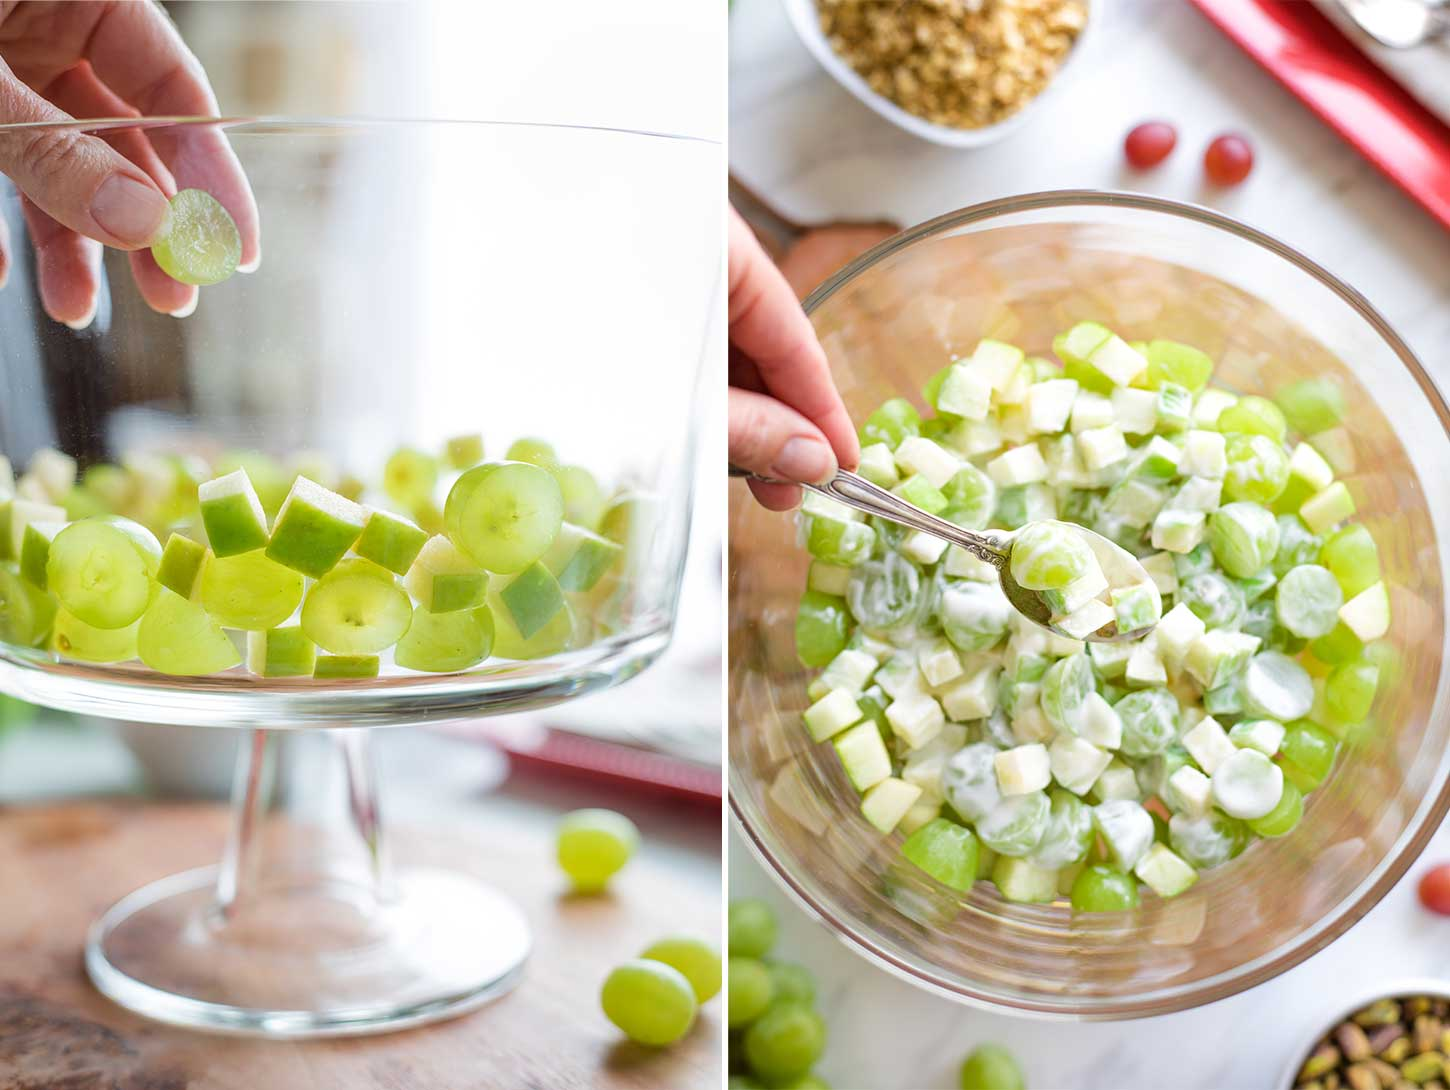 Collage of two photos (one from the side and one overhead) showing how to make the salad's green layer.